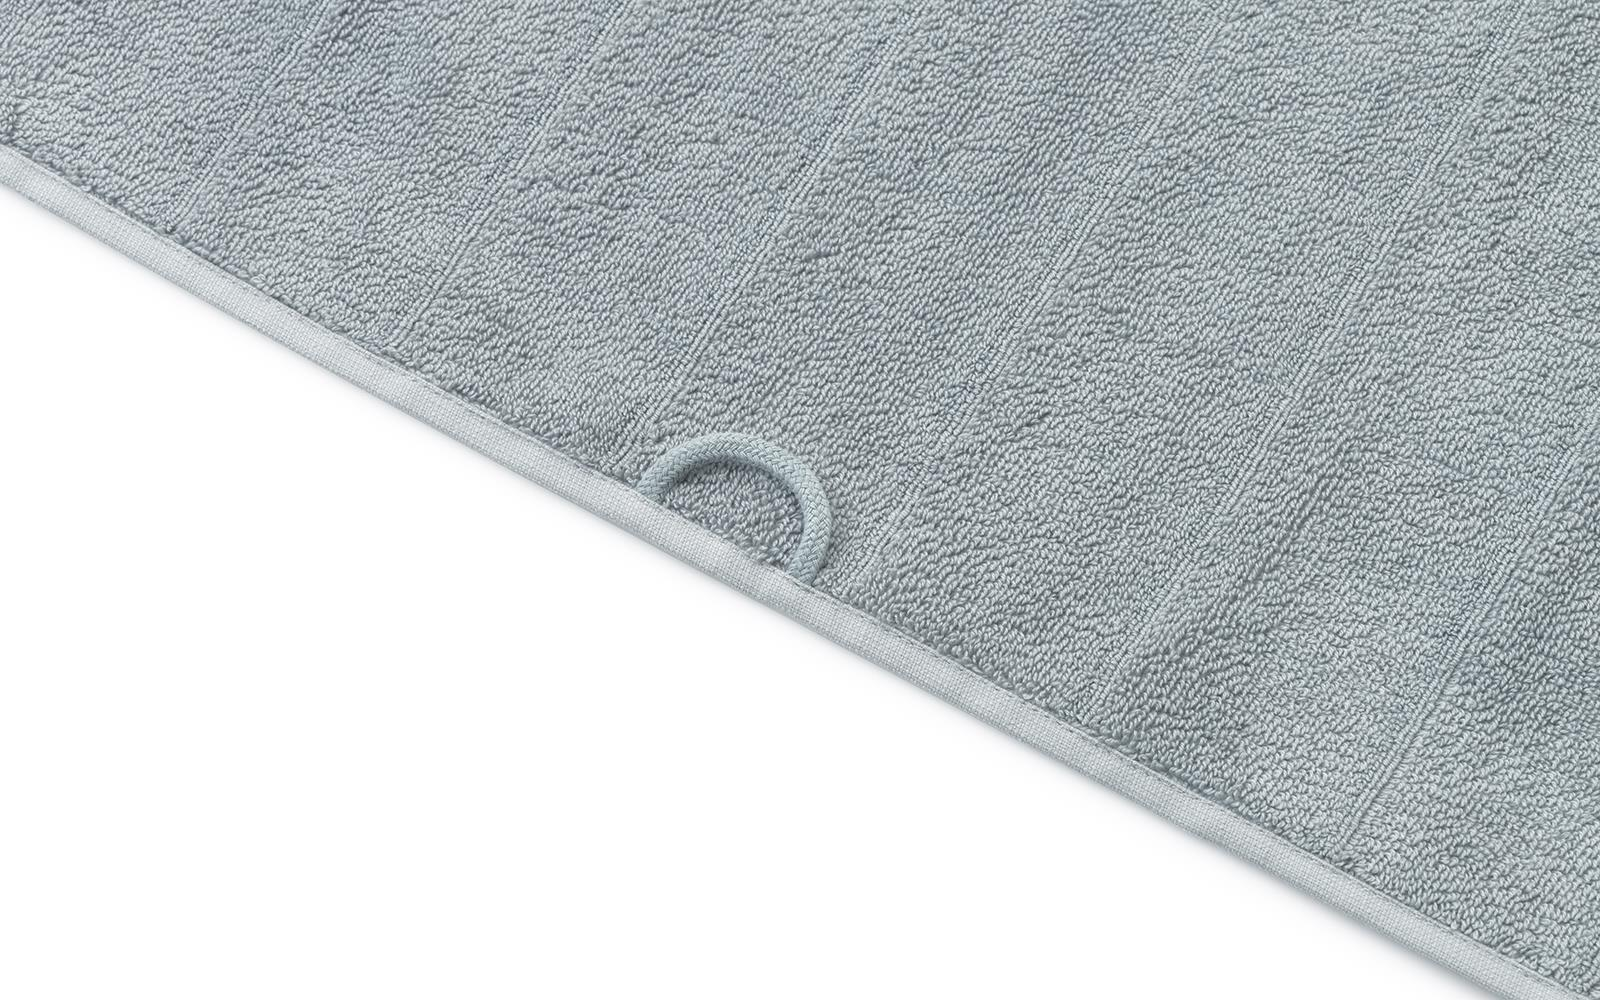 Imprint Towel 70x1404